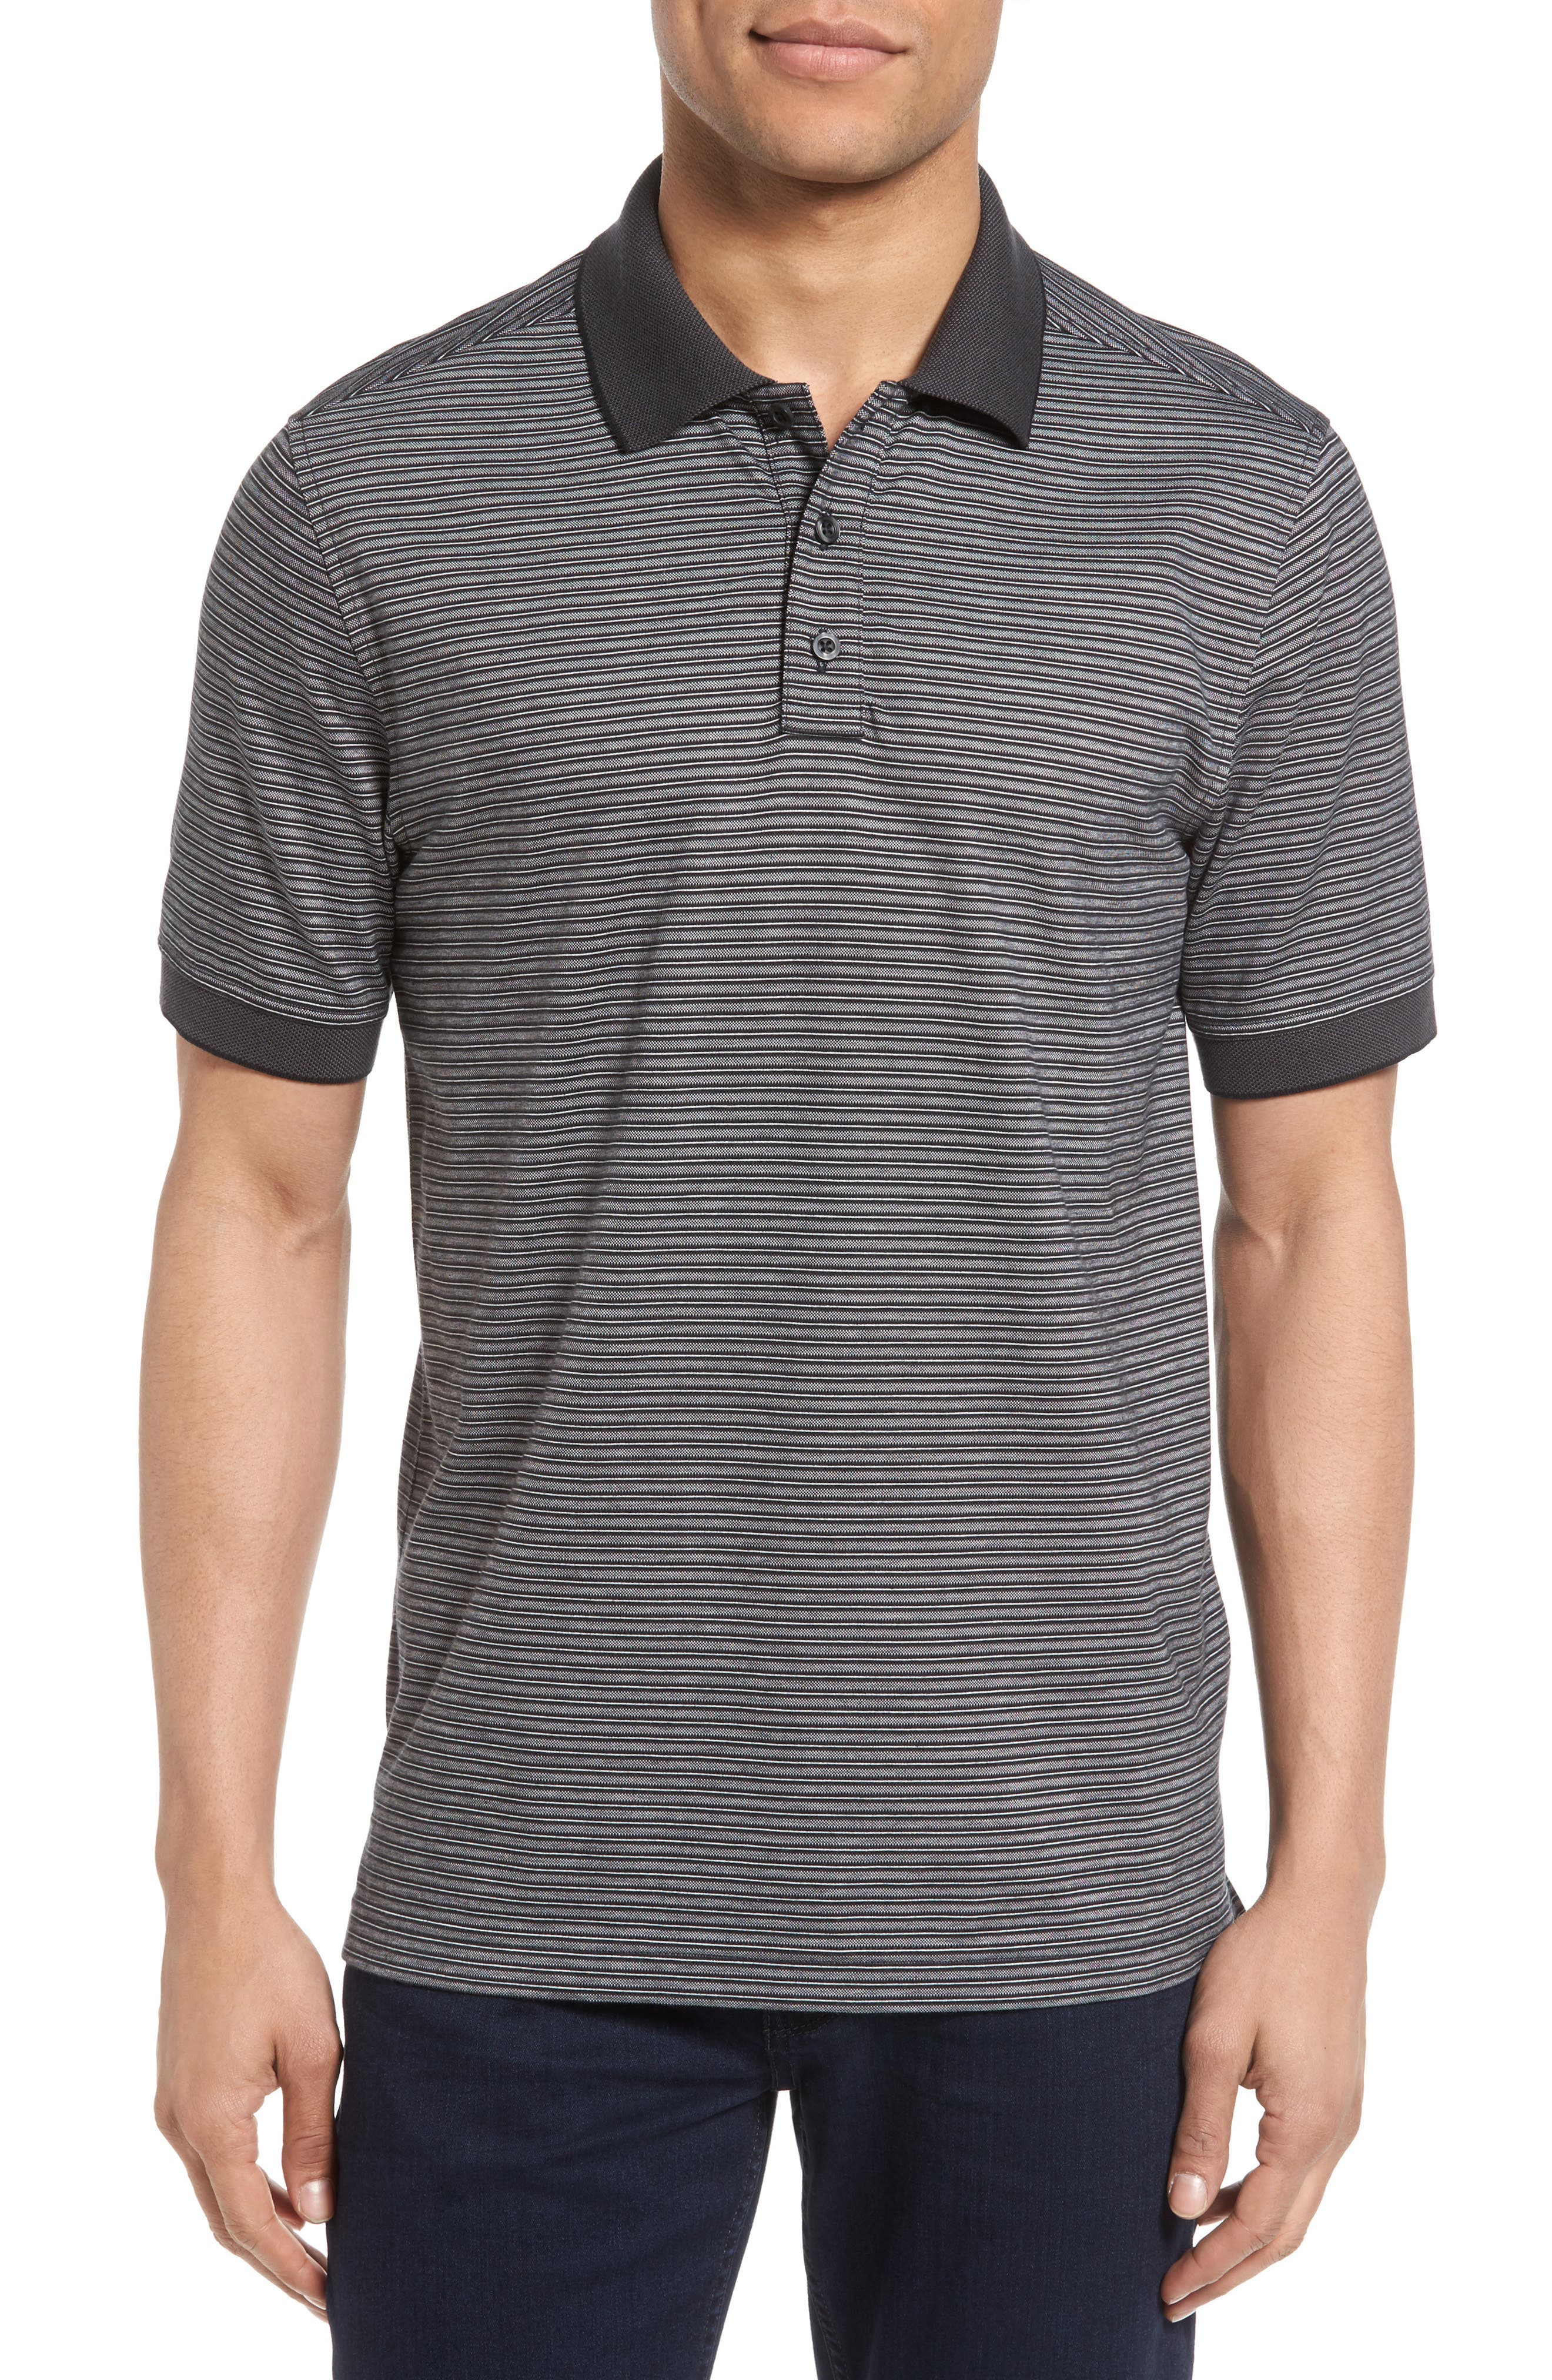 Nordstrom Men's Shop Regular Fit Performance Stripe Polo